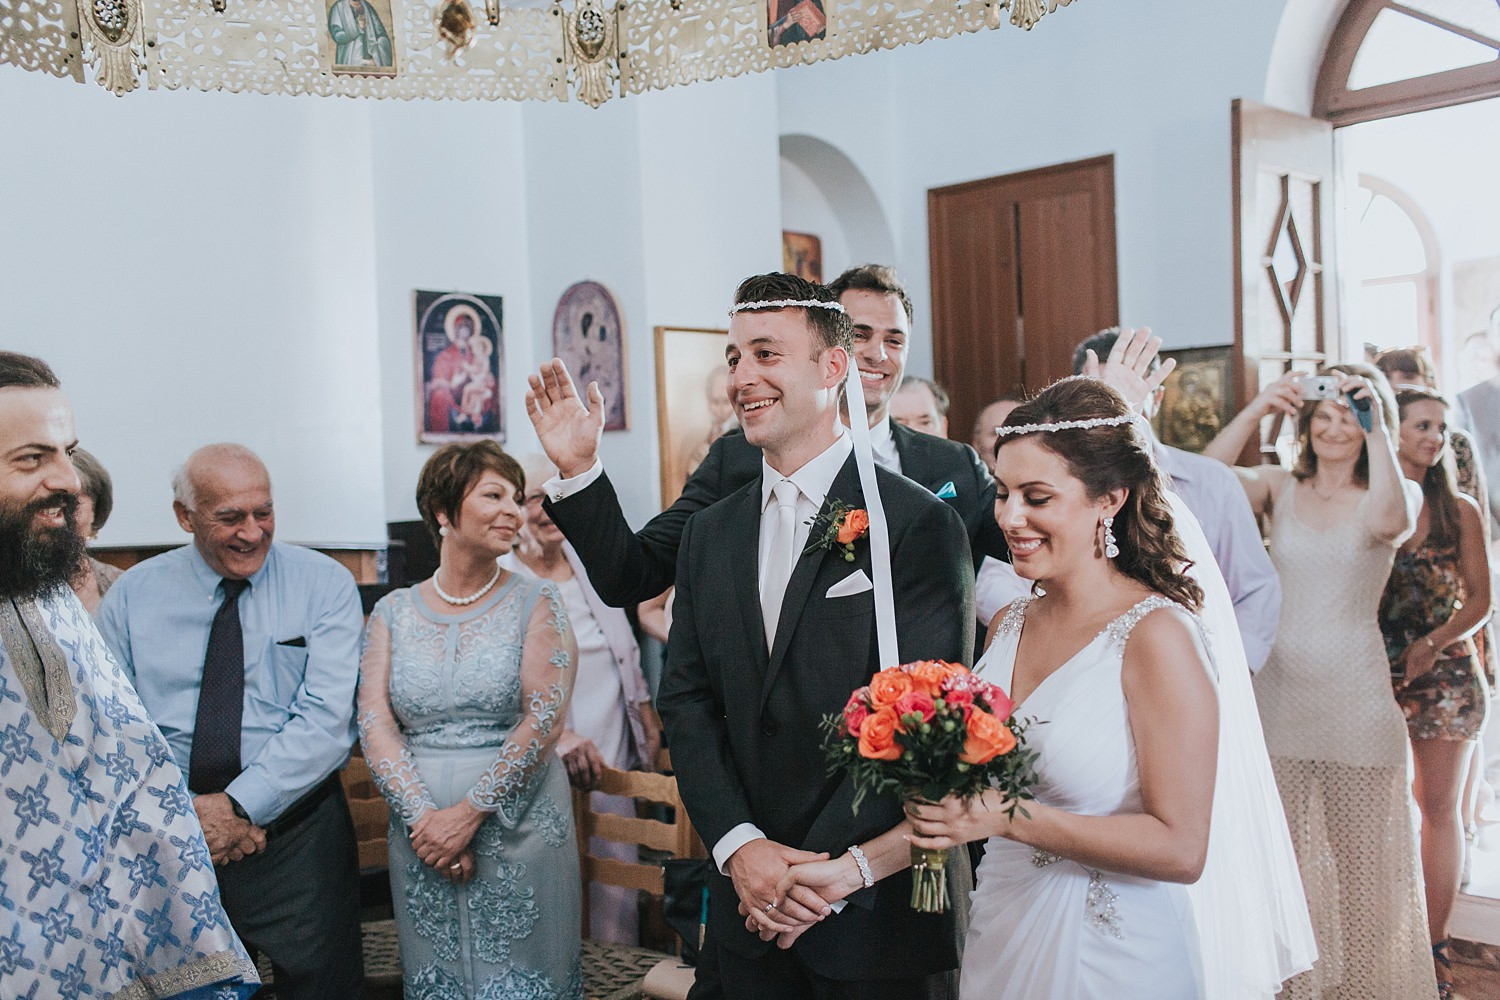 orthodox crowns during marriage rite in skiathos